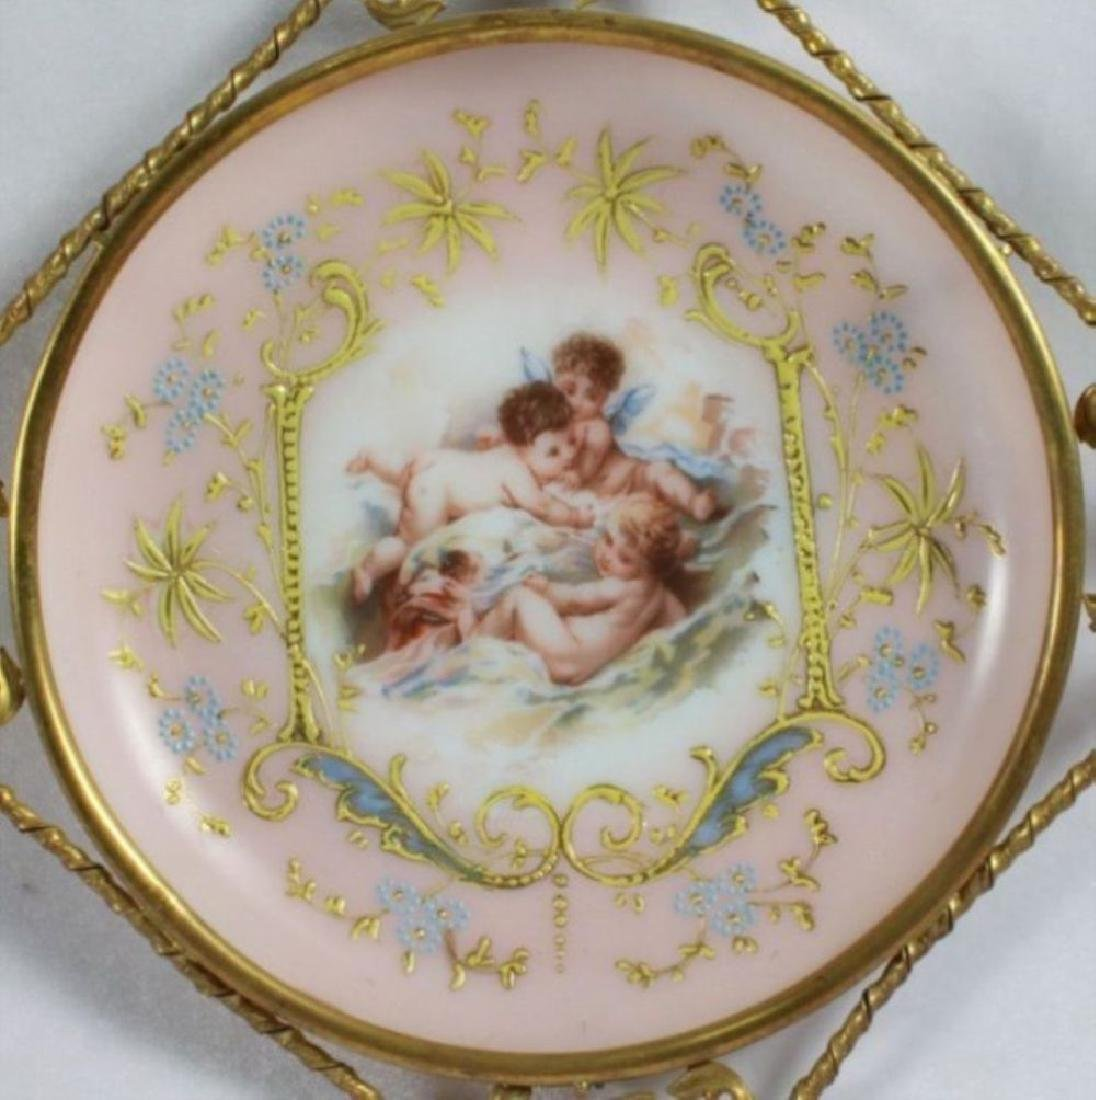 19Th C. Victorian Enameled Porcelain Wall Hangings - 3